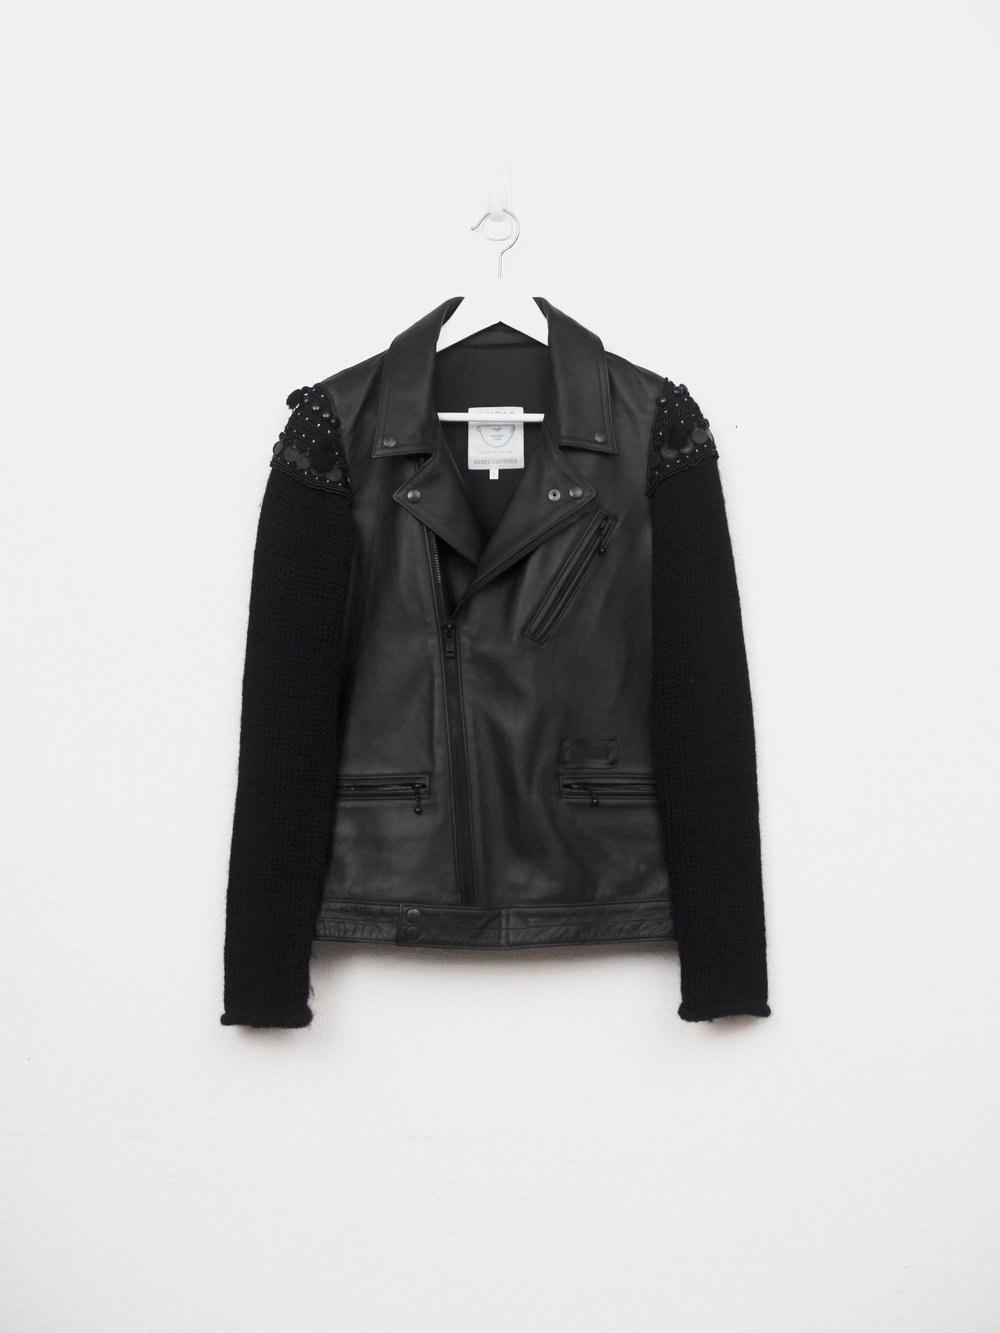 UNDERCOVER AW09 Joy Division Ethnic Leather Double Riders Jacket